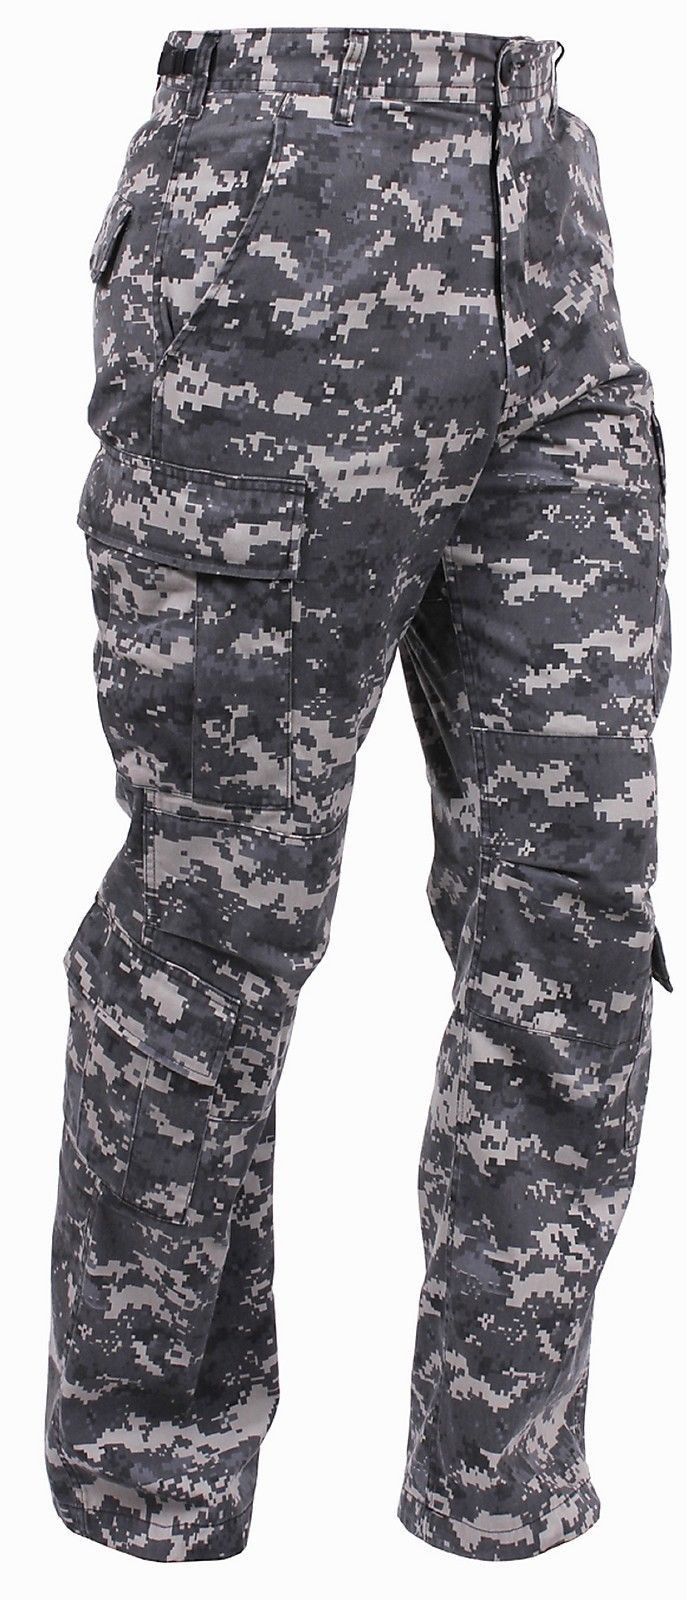 Men's Subdued Urban Digital Camouflage Military Fatigue Cargo Pants S - 3XL NWT